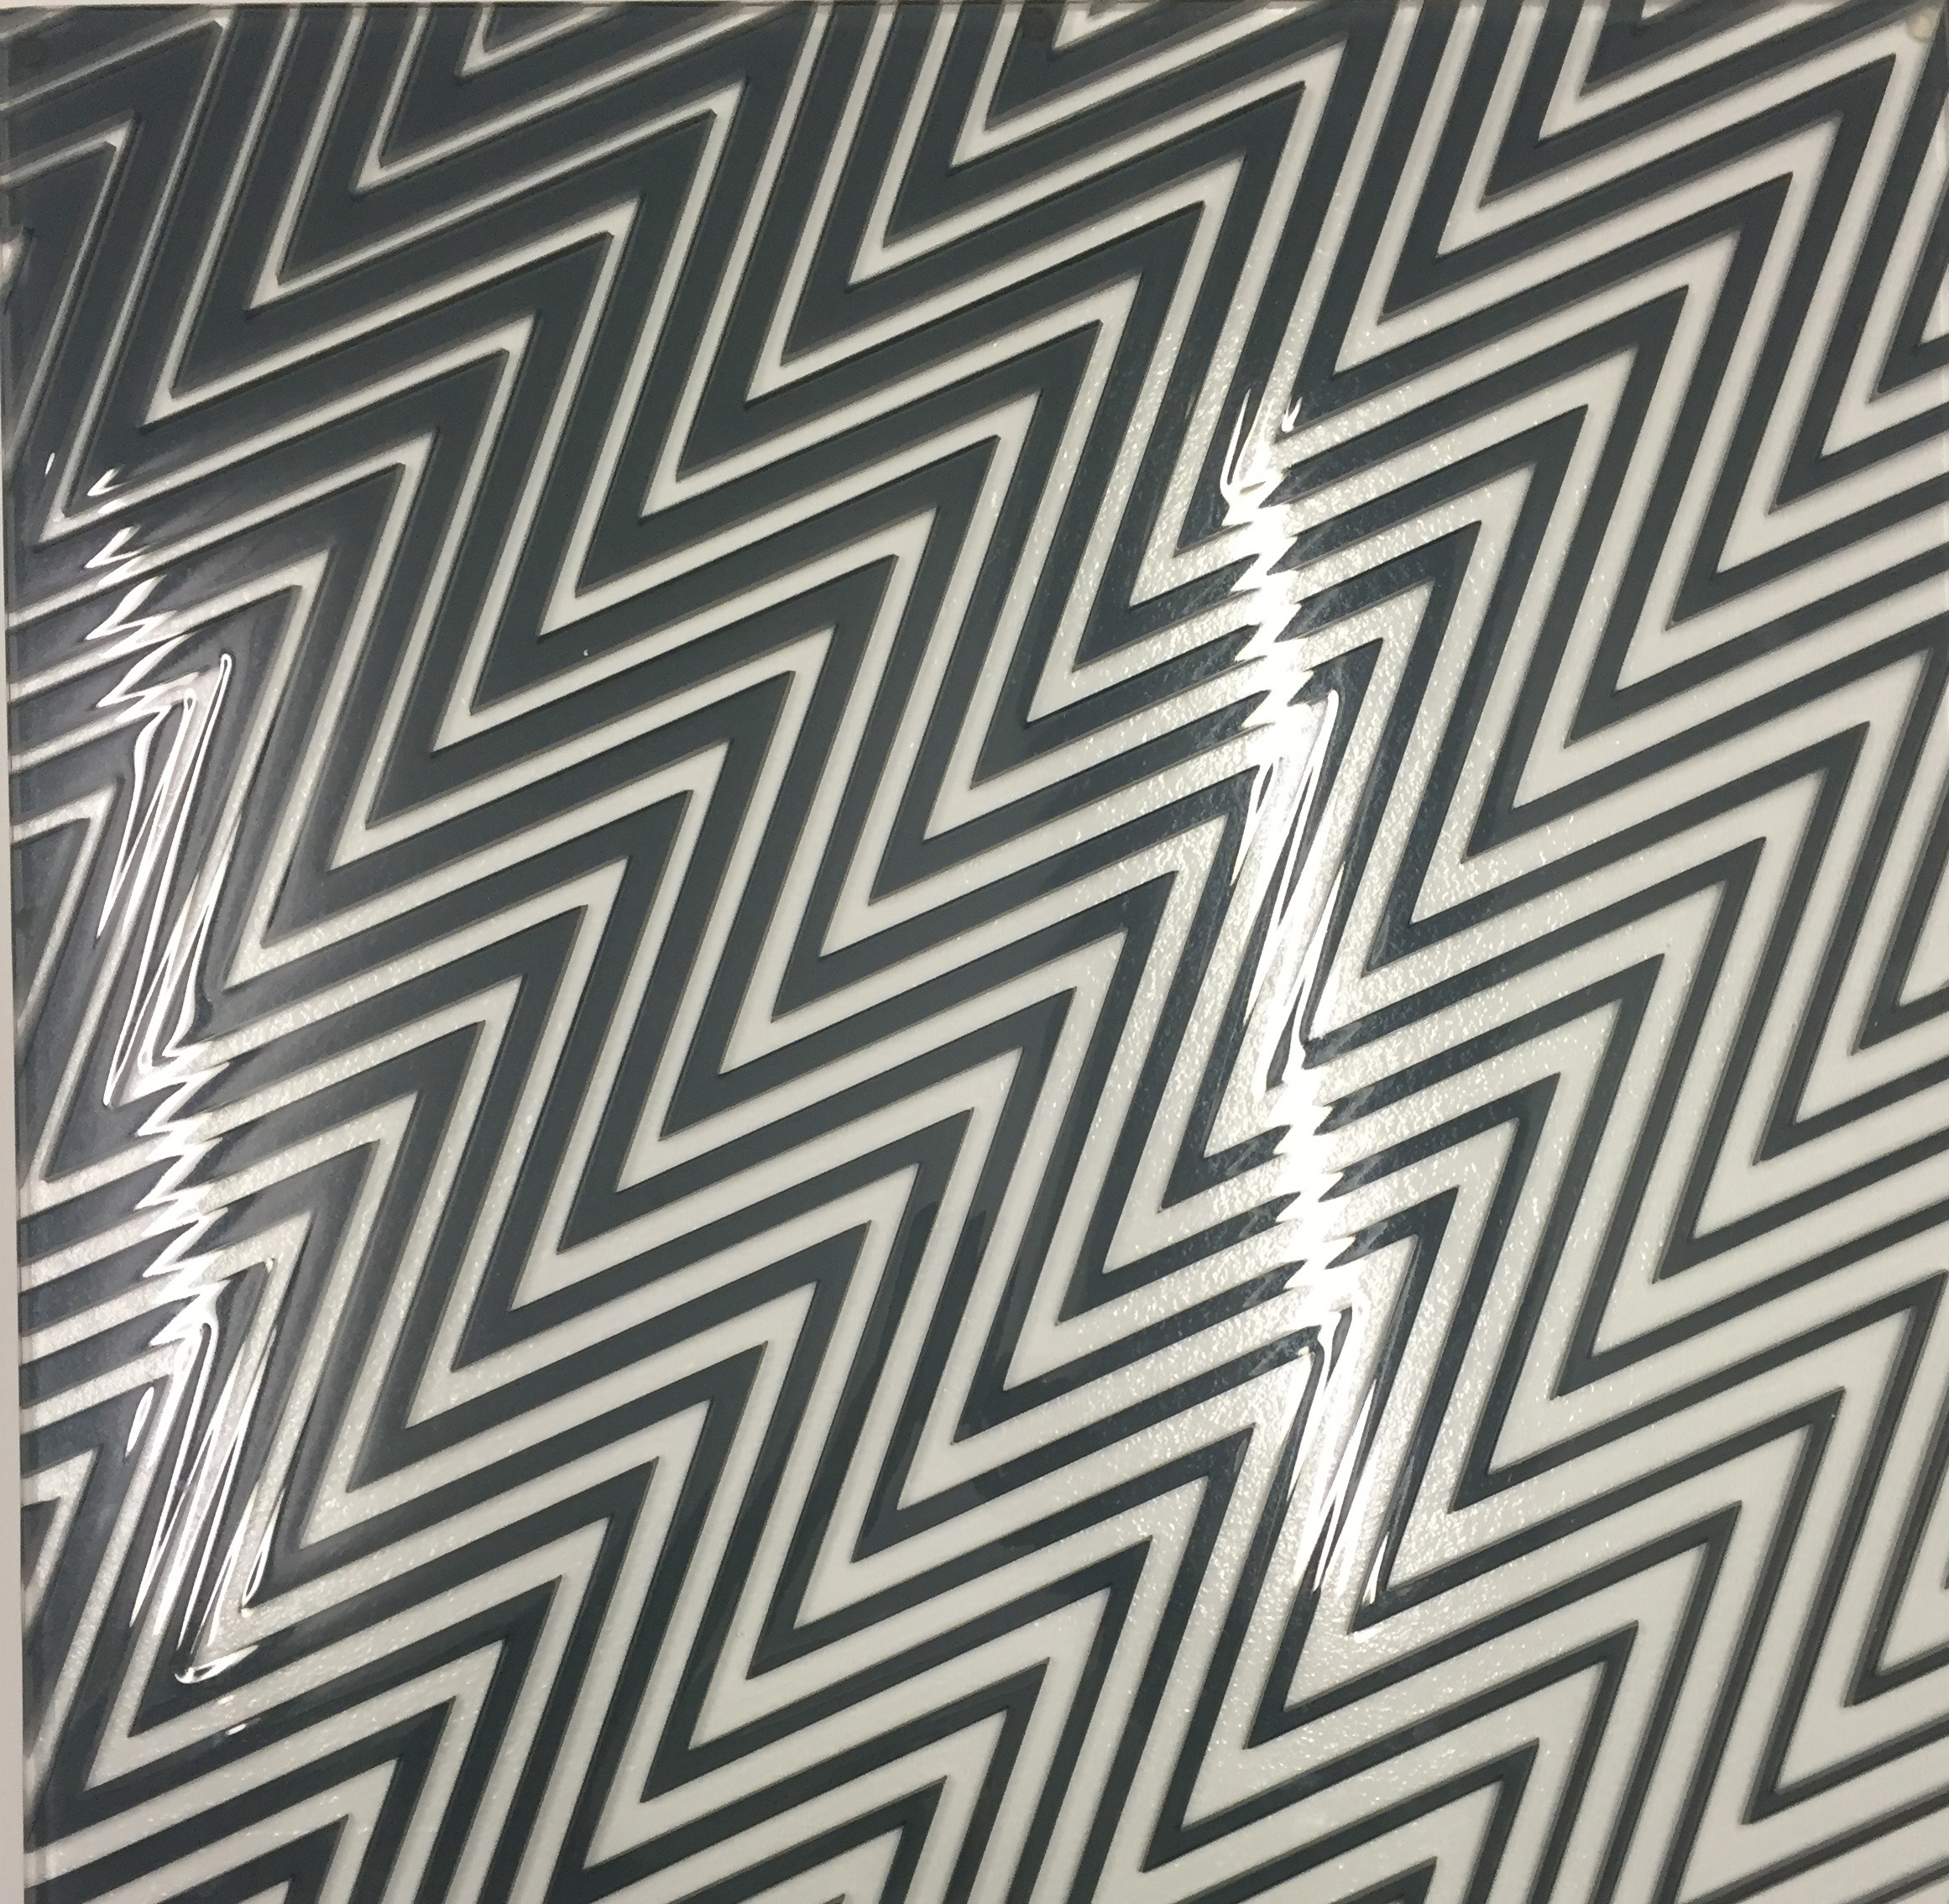 This creates a transparent sheet, the edges of which are polished using diamond tools before a penultimate process of industrial laminating to comply with British Standards.